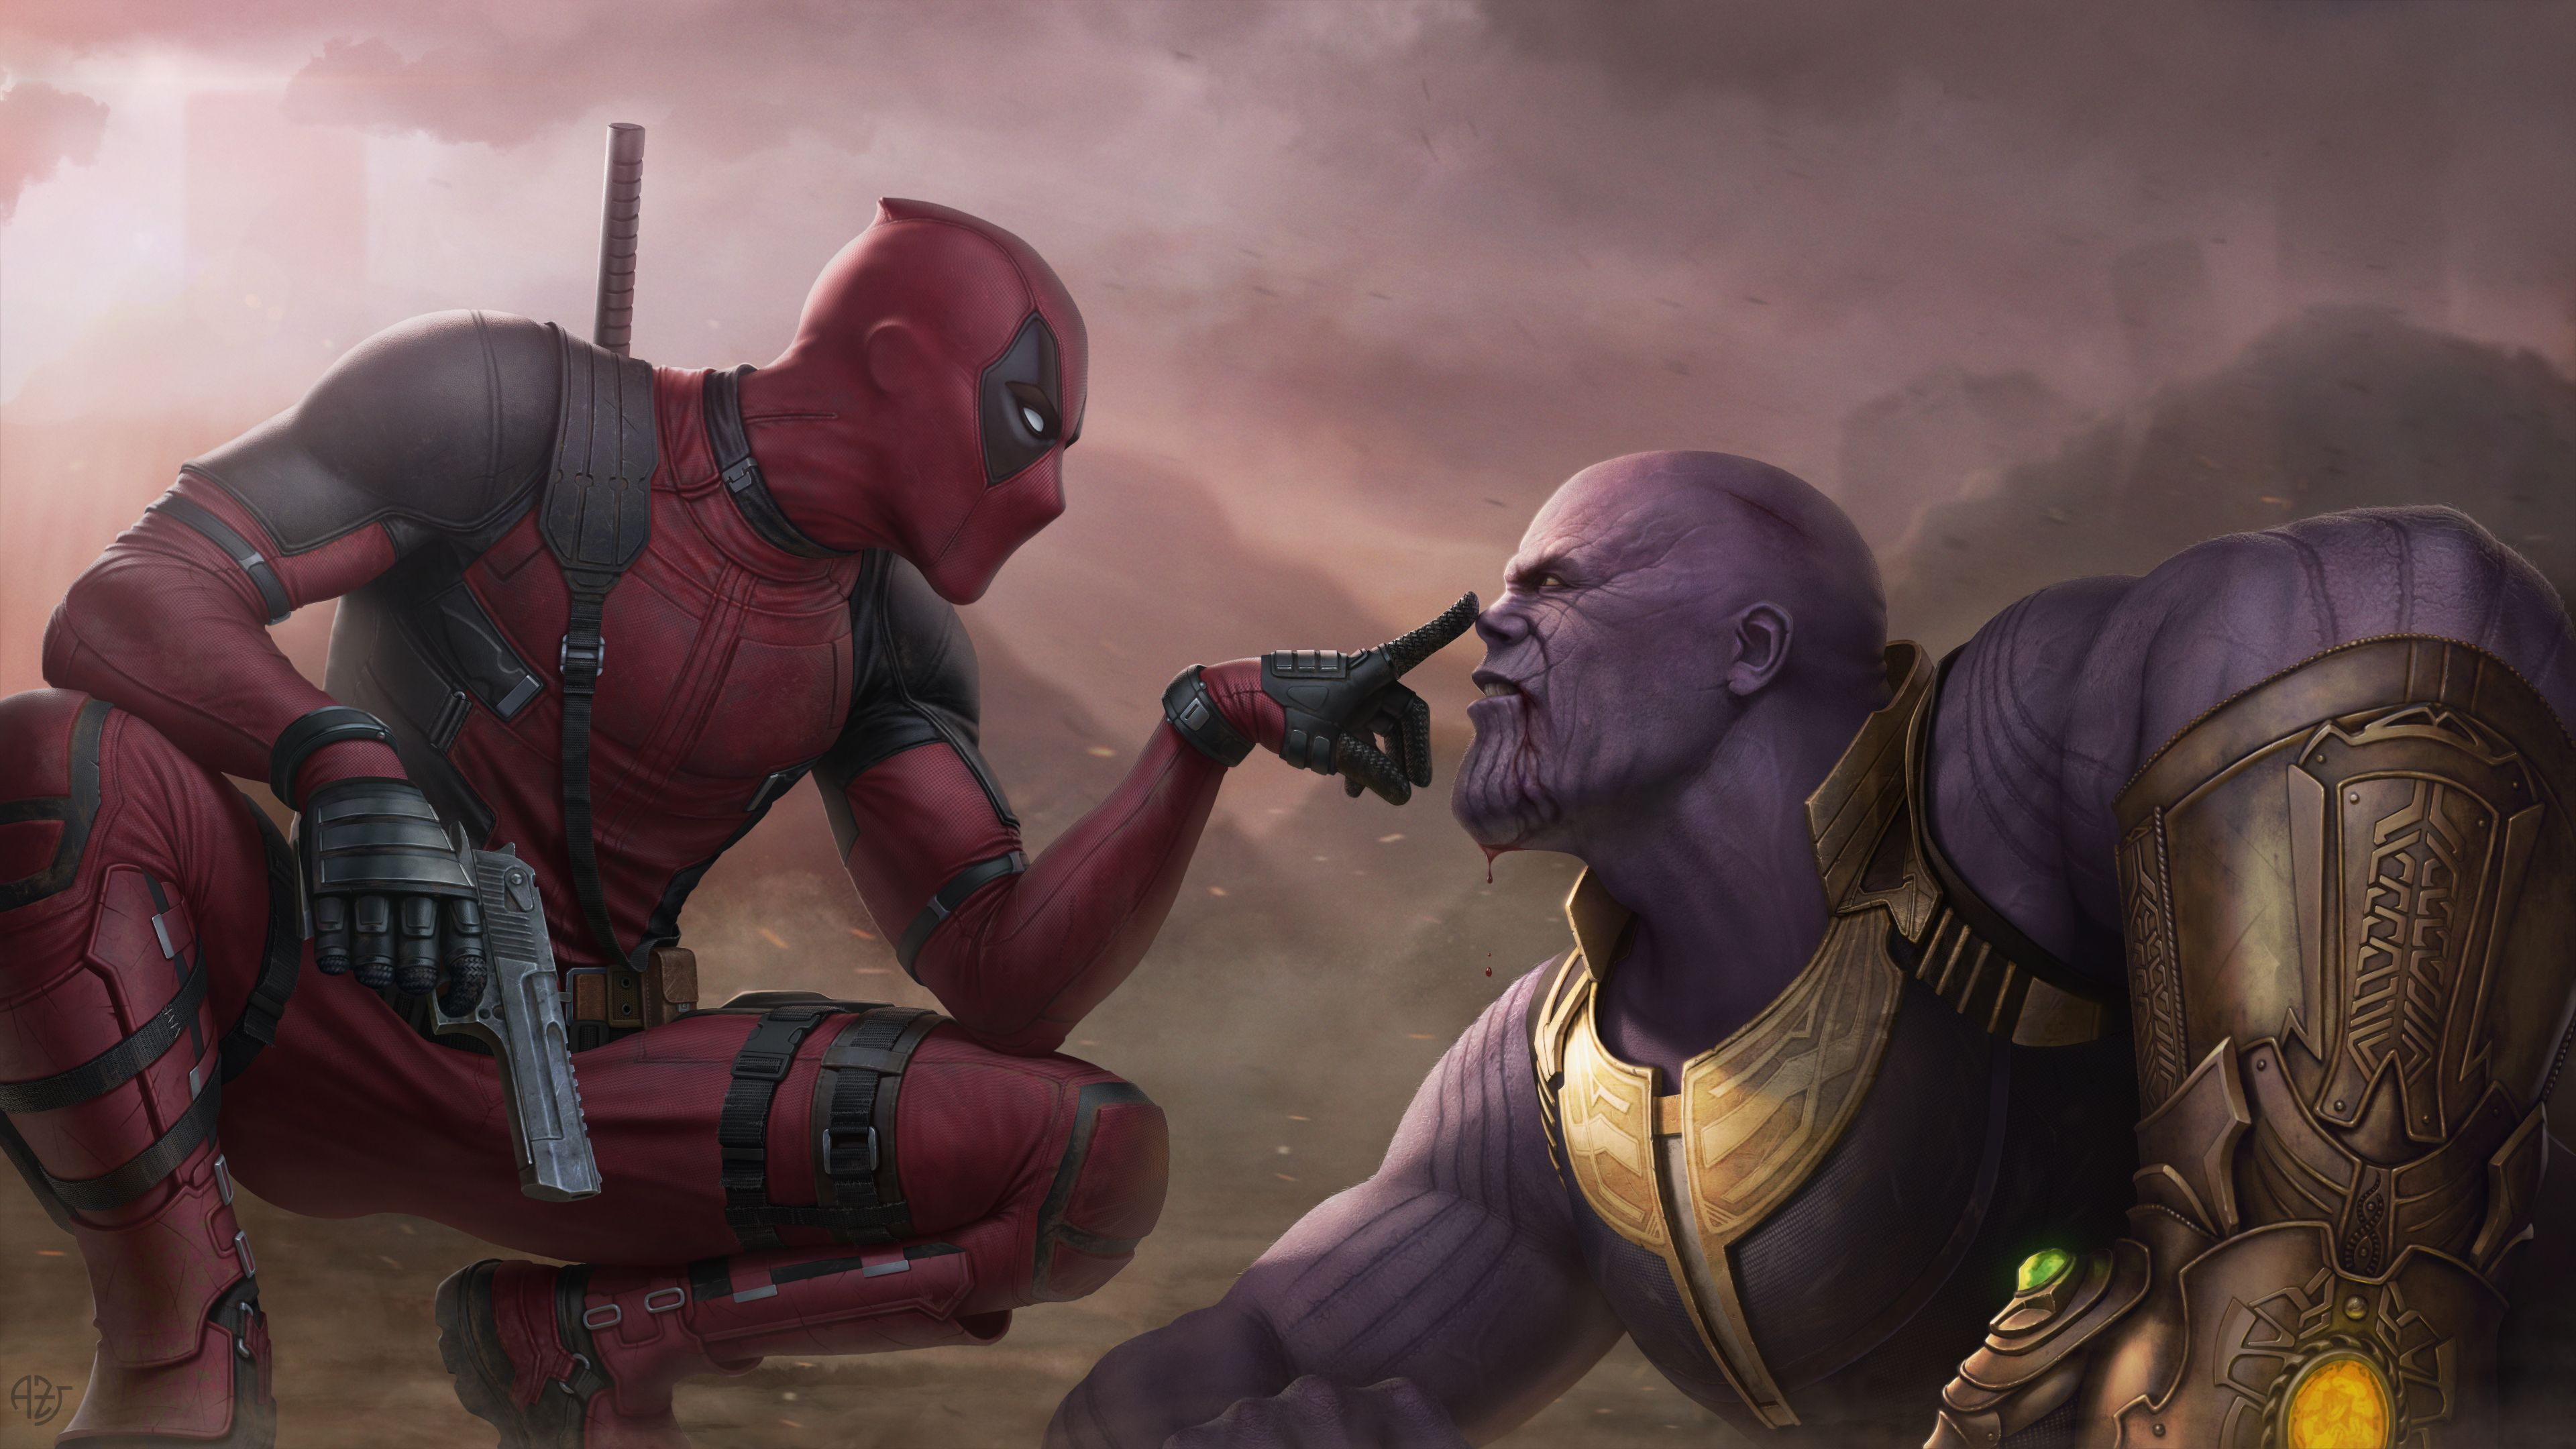 Deadpool Vs Thanos 4k Thanos Wallpapers Supervillain Wallpapers Superheroes Wallpapers Hd Wallpapers Di Deadpool Wallpaper Marvel Superheroes Marvel Heroes